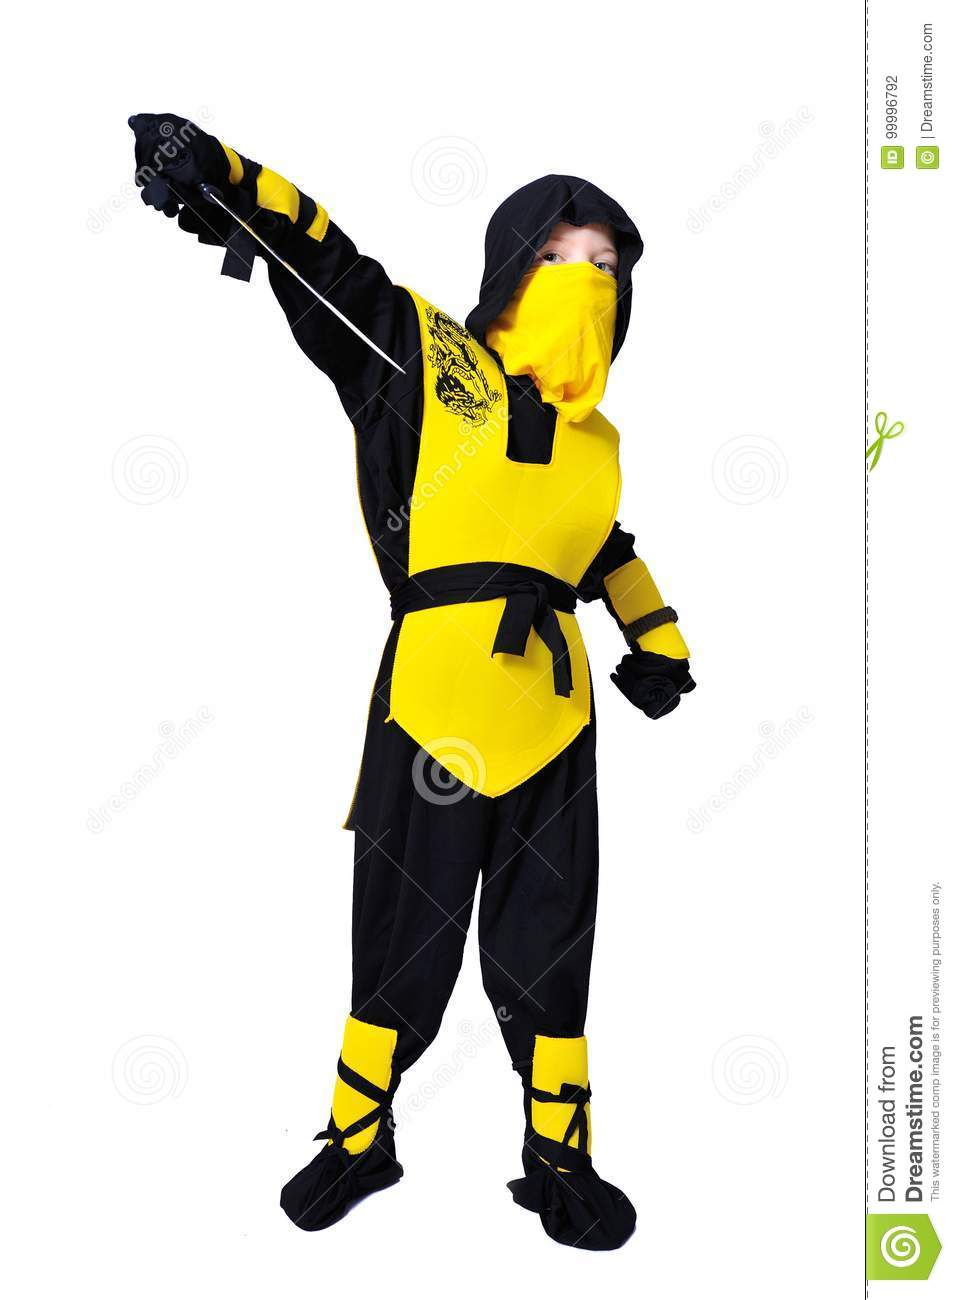 The seven-years old boy in black and yellow ninja suit with a ho